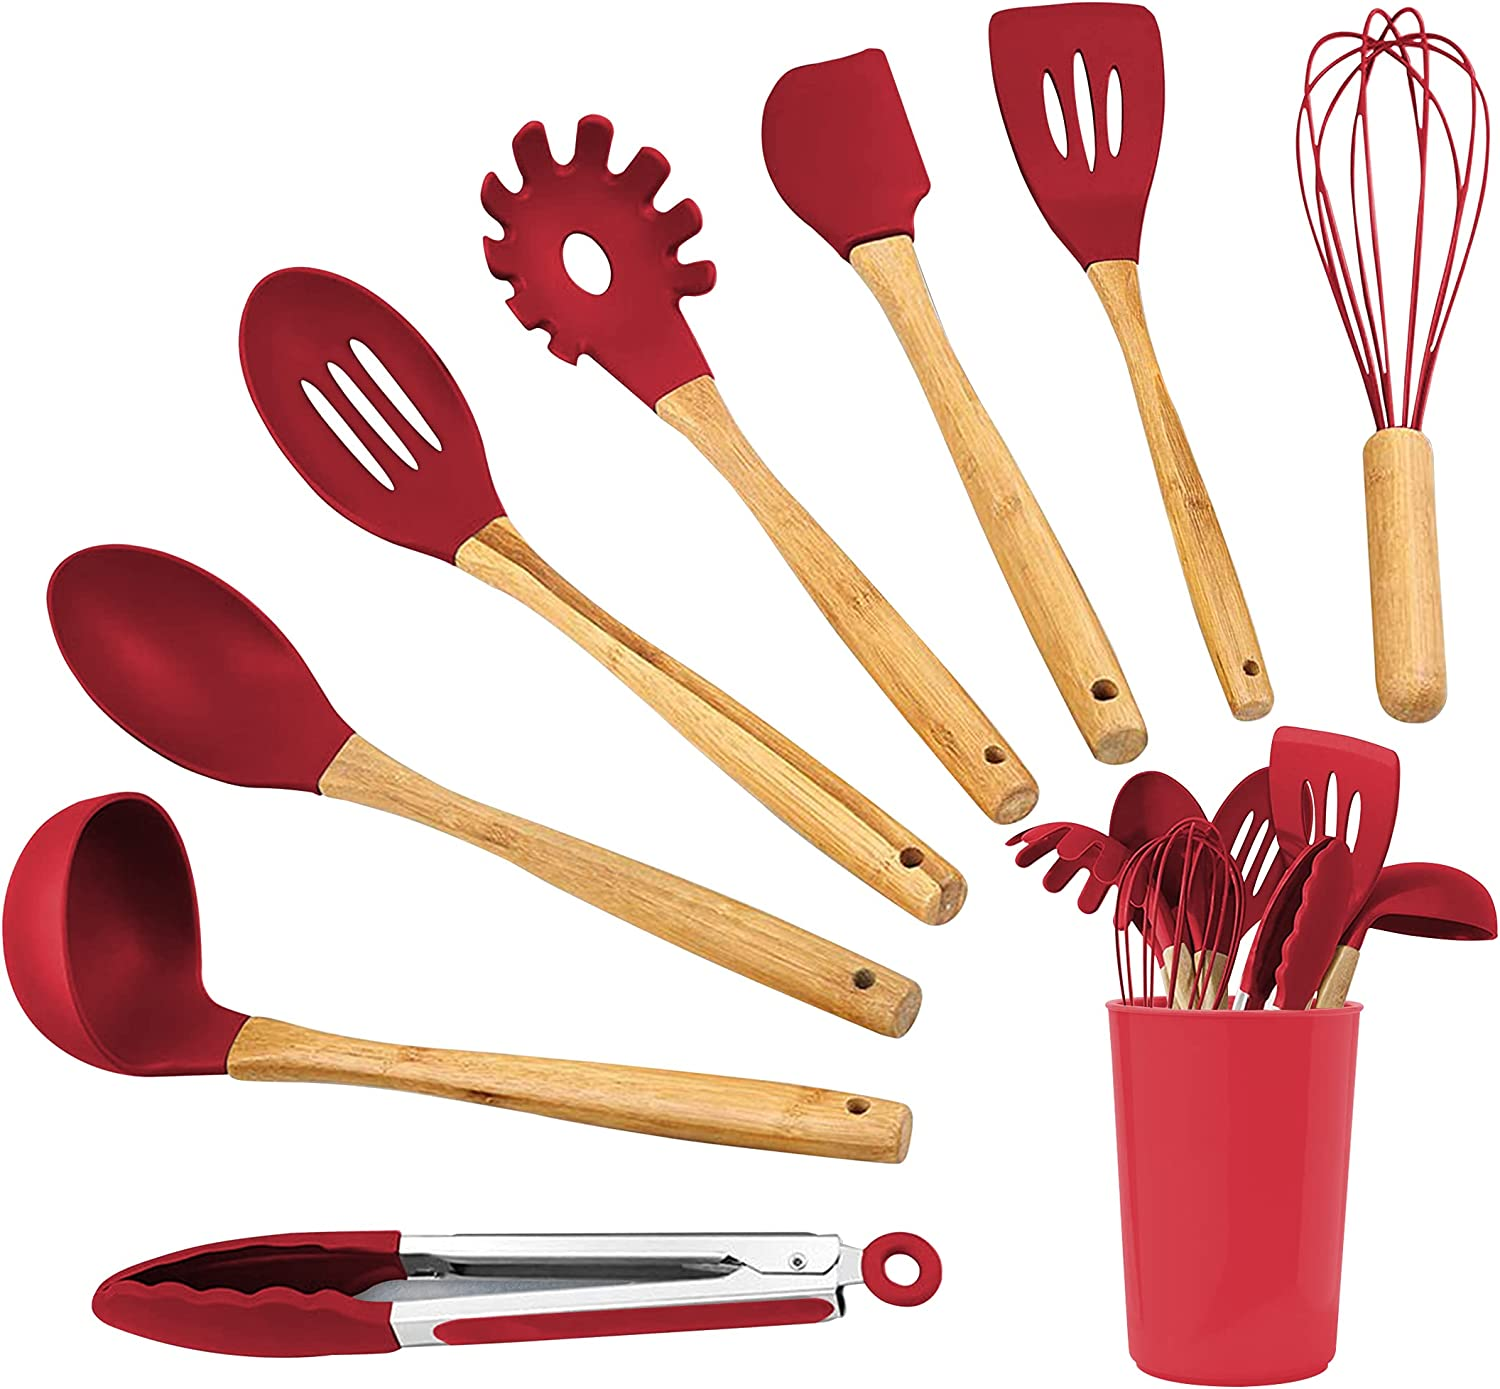 Kitchen 4 years warranty Silicone Utensil 8 Piece Set Cooking Houston Mall with Wooden Han For